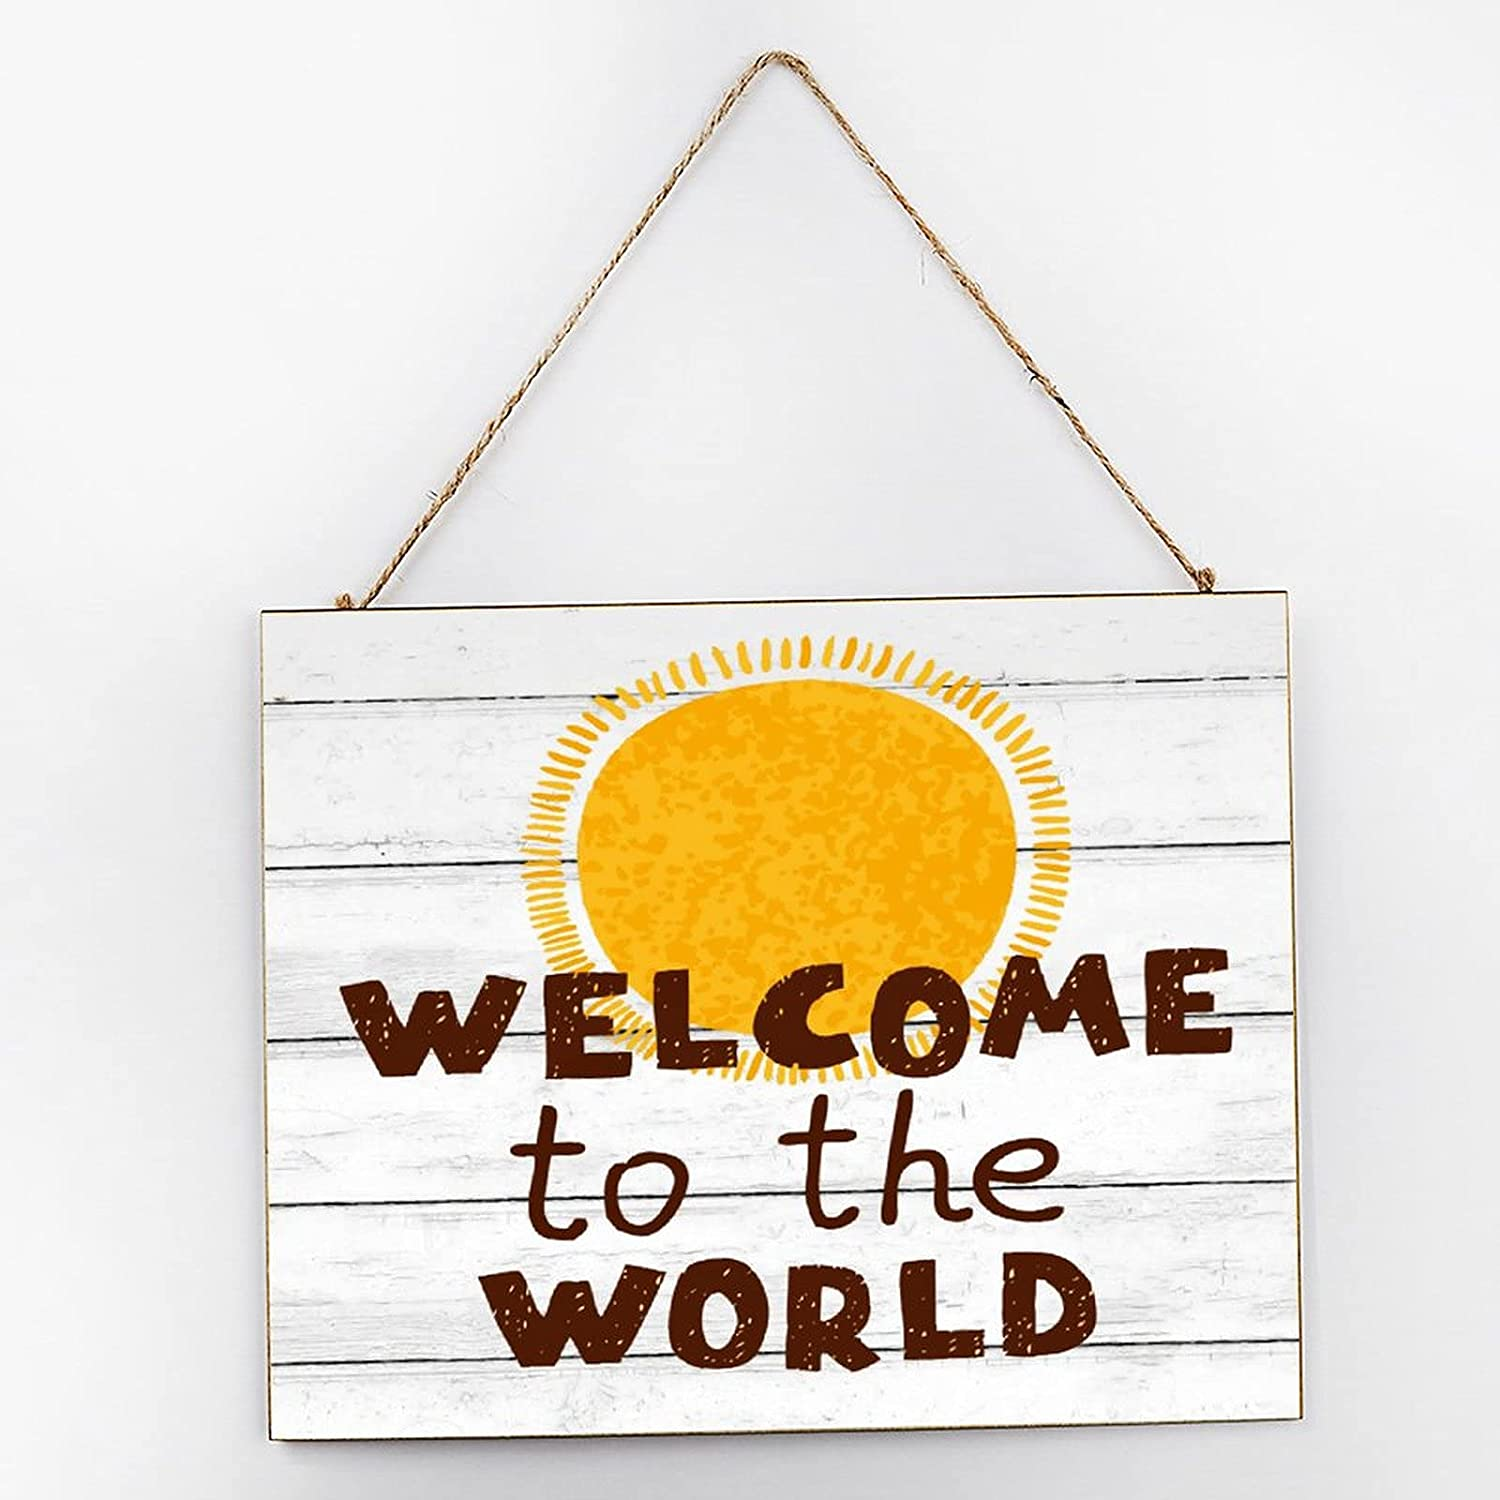 Superior by Unbranded Wood Louisville-Jefferson County Mall Sign Welcome Room The to World, Nursery